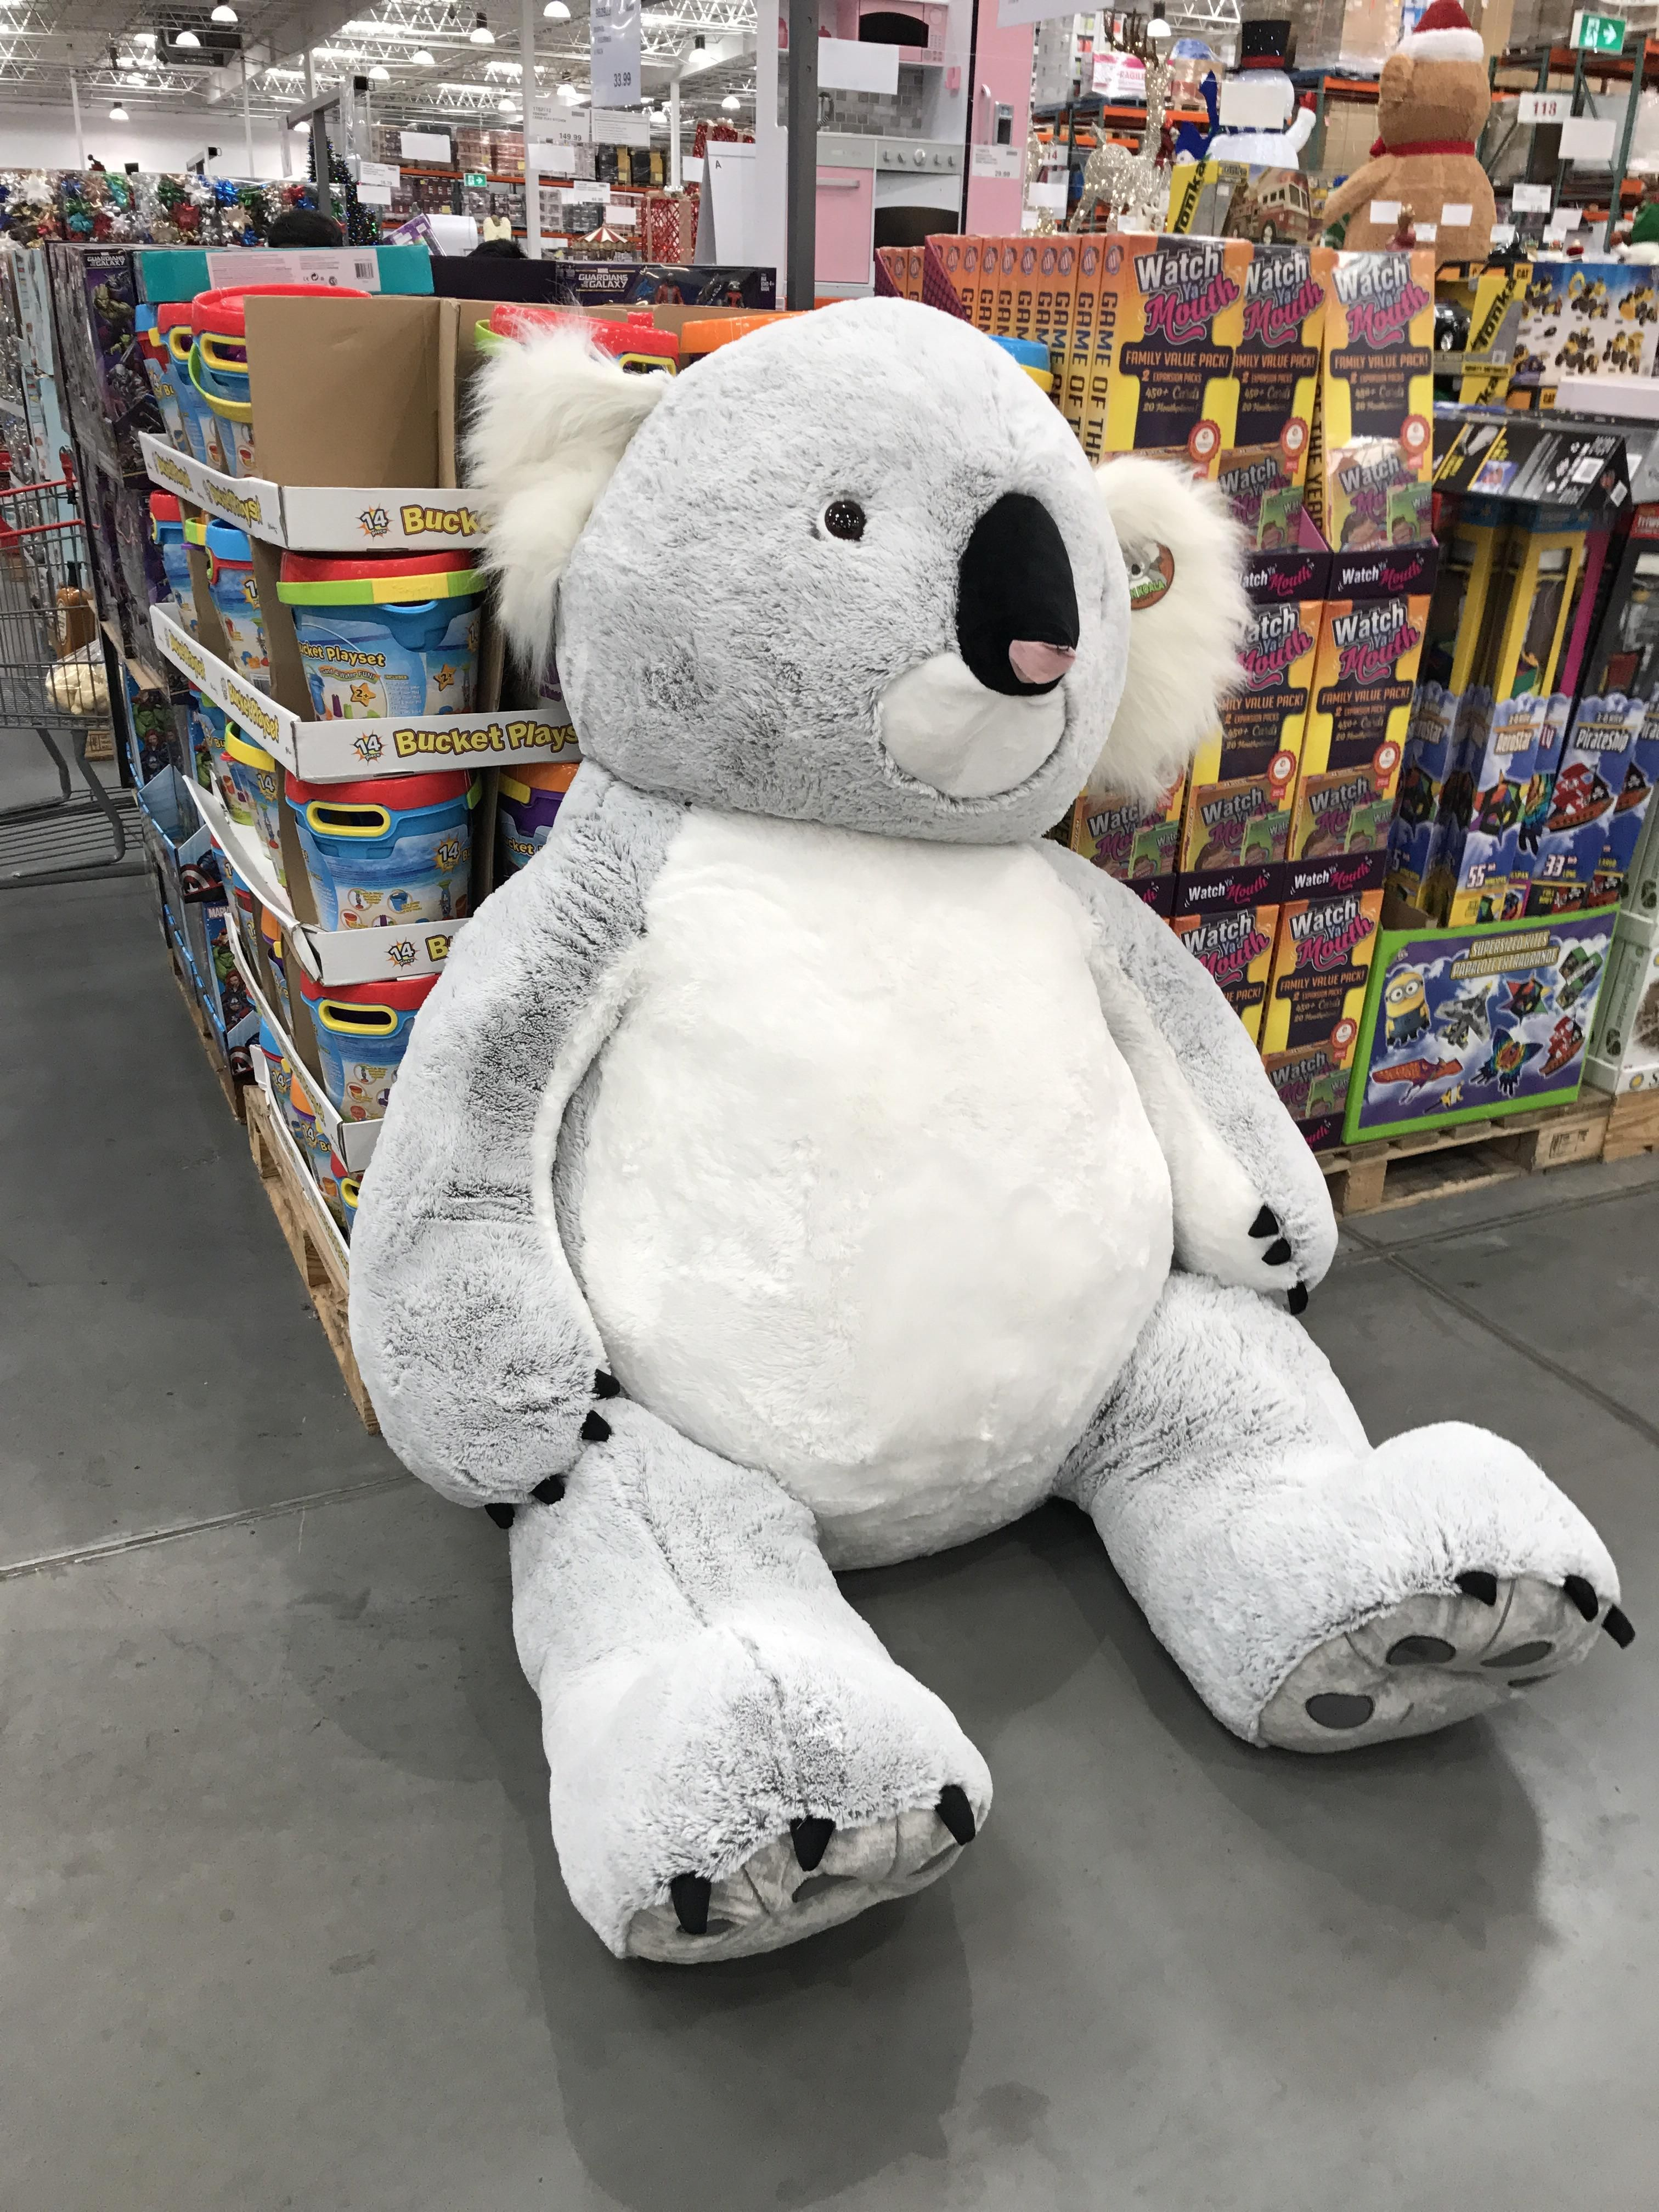 Costco In Australia Has Giant Koalas As Well As The Usual Giant Bear